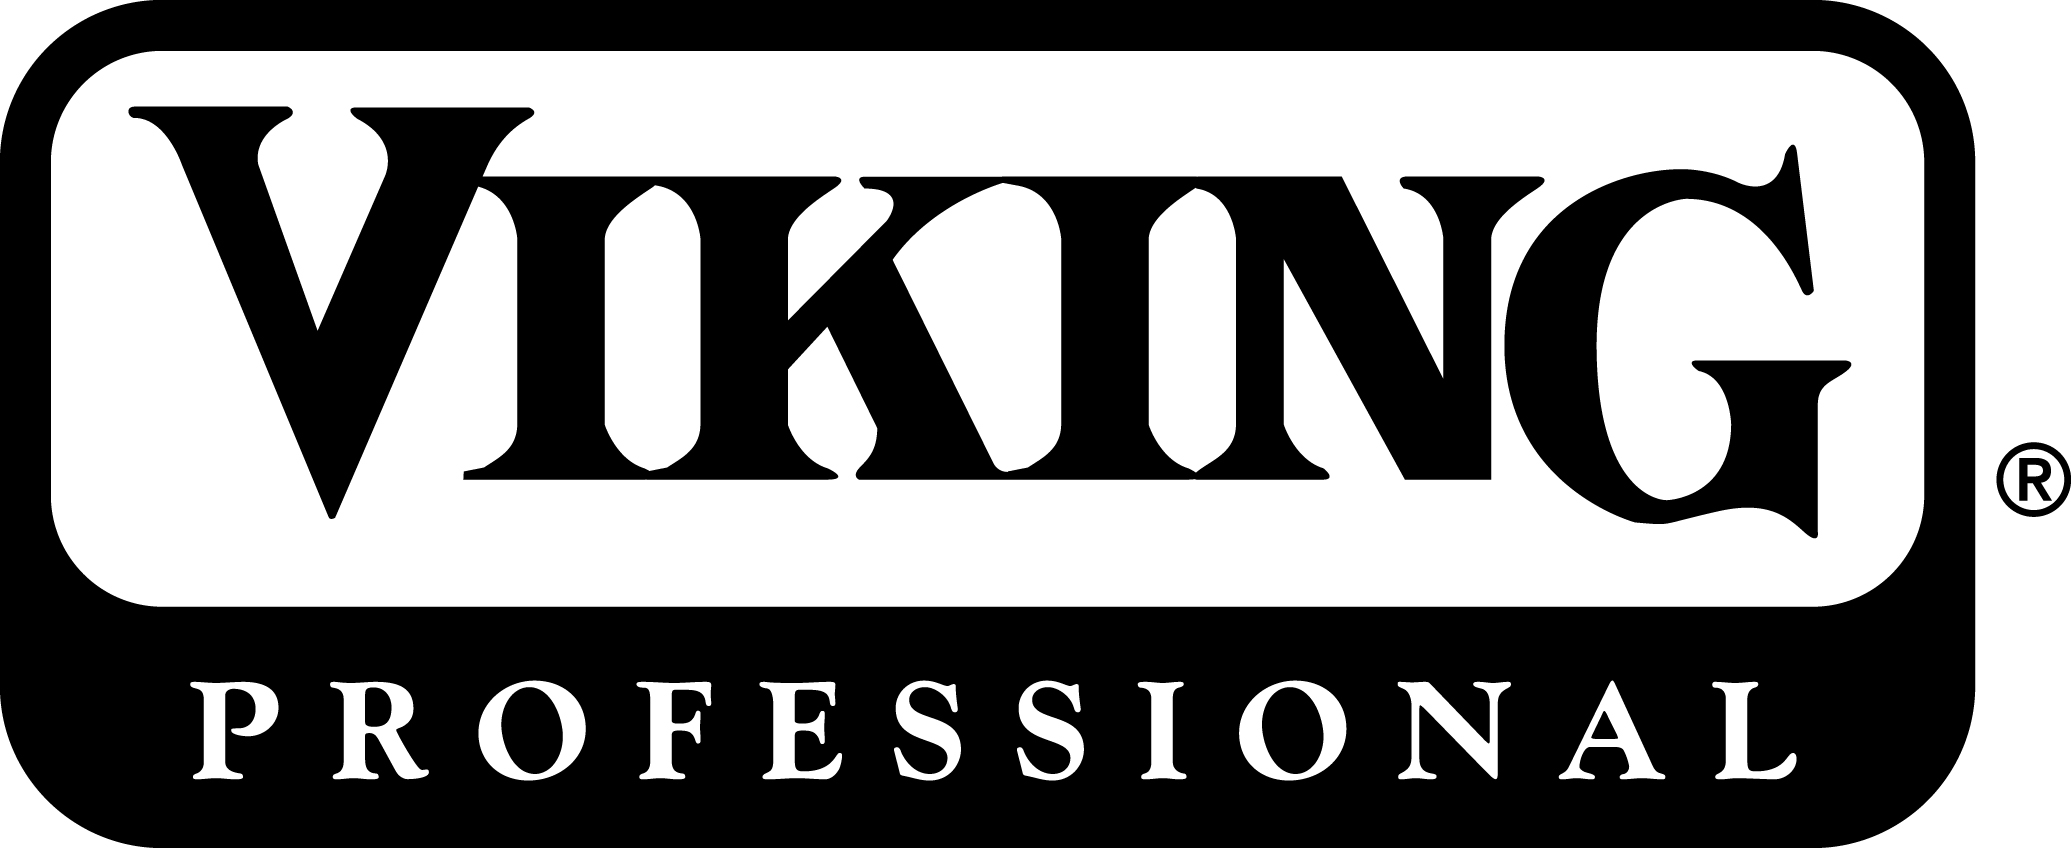 Viking Fridge Service Near Me, Kenmore Refrigerator Repair Cost